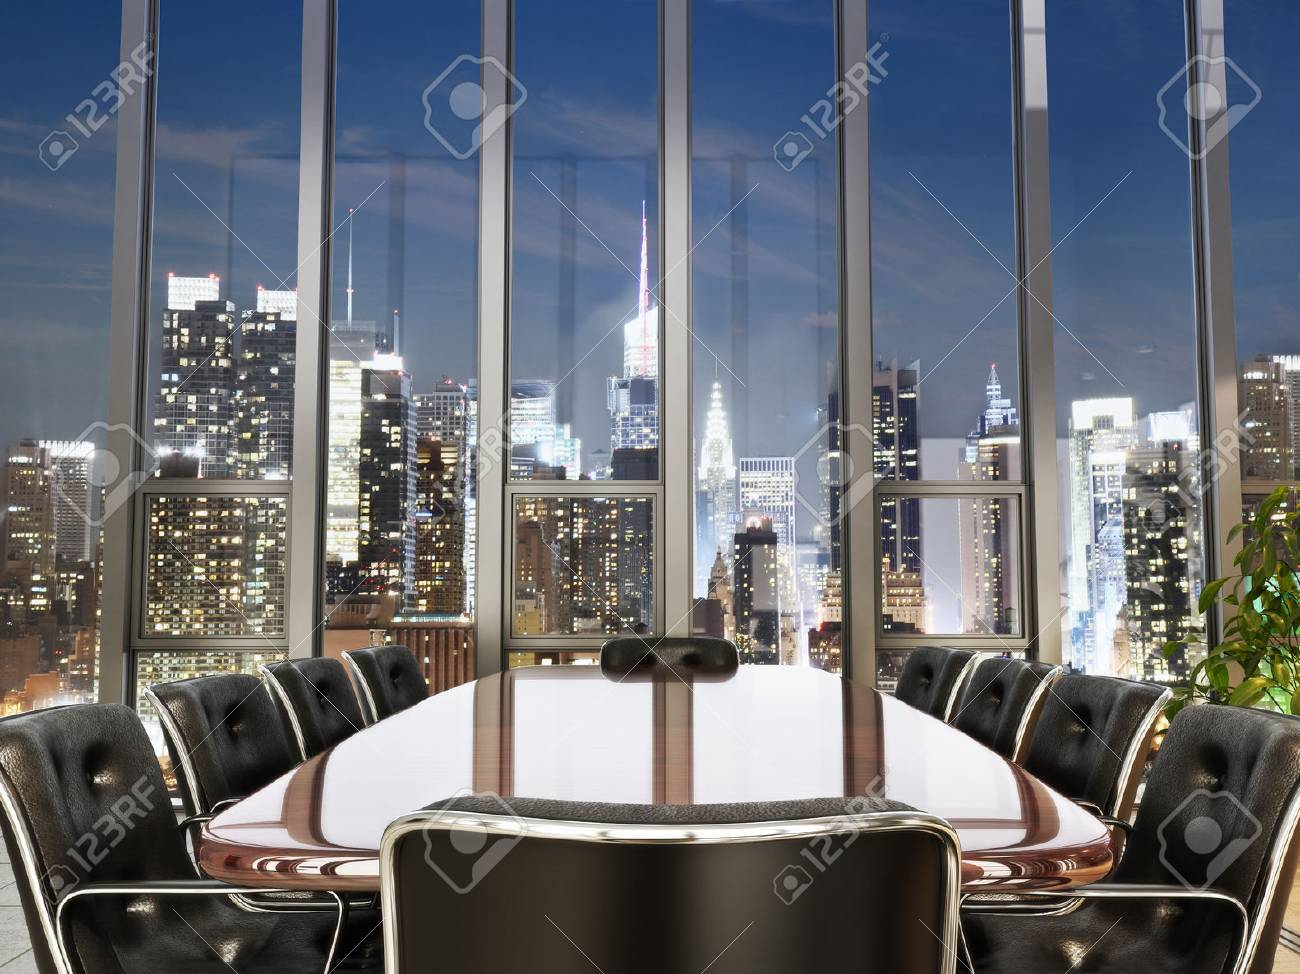 Business office conference room with table and leather chairs overlooking a city at dusk. Photo realistic 3d model scene. Standard-Bild - 44123622